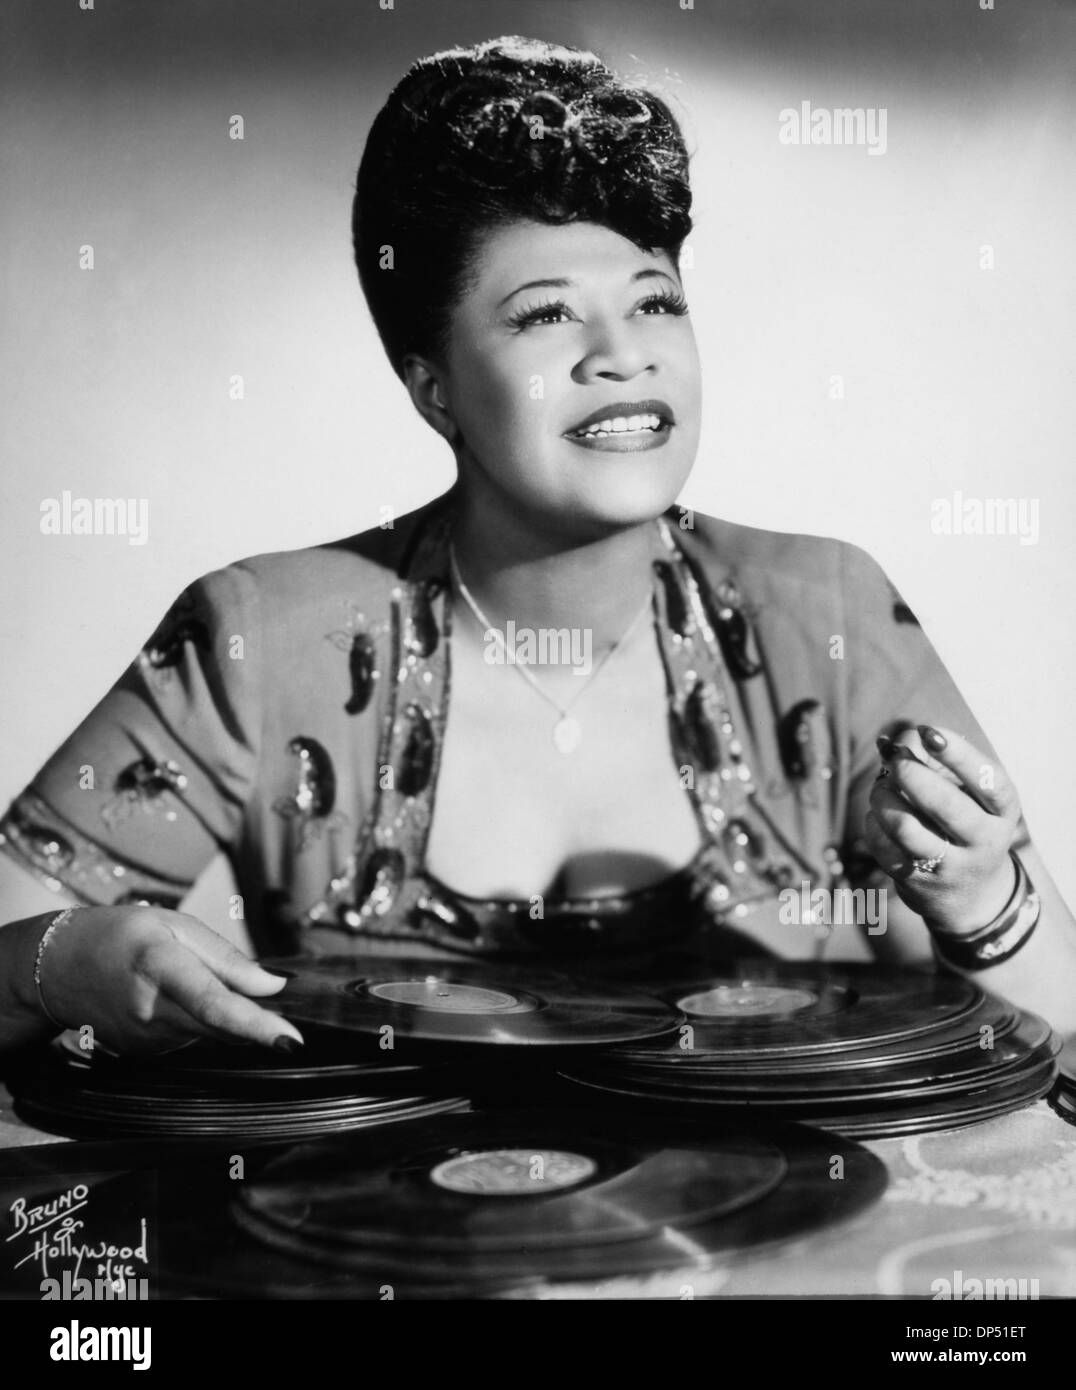 Ella Fitzgerald (1917-1996), American Jazz and Blues Singer, Portrait, circa 1940's Stock Photo